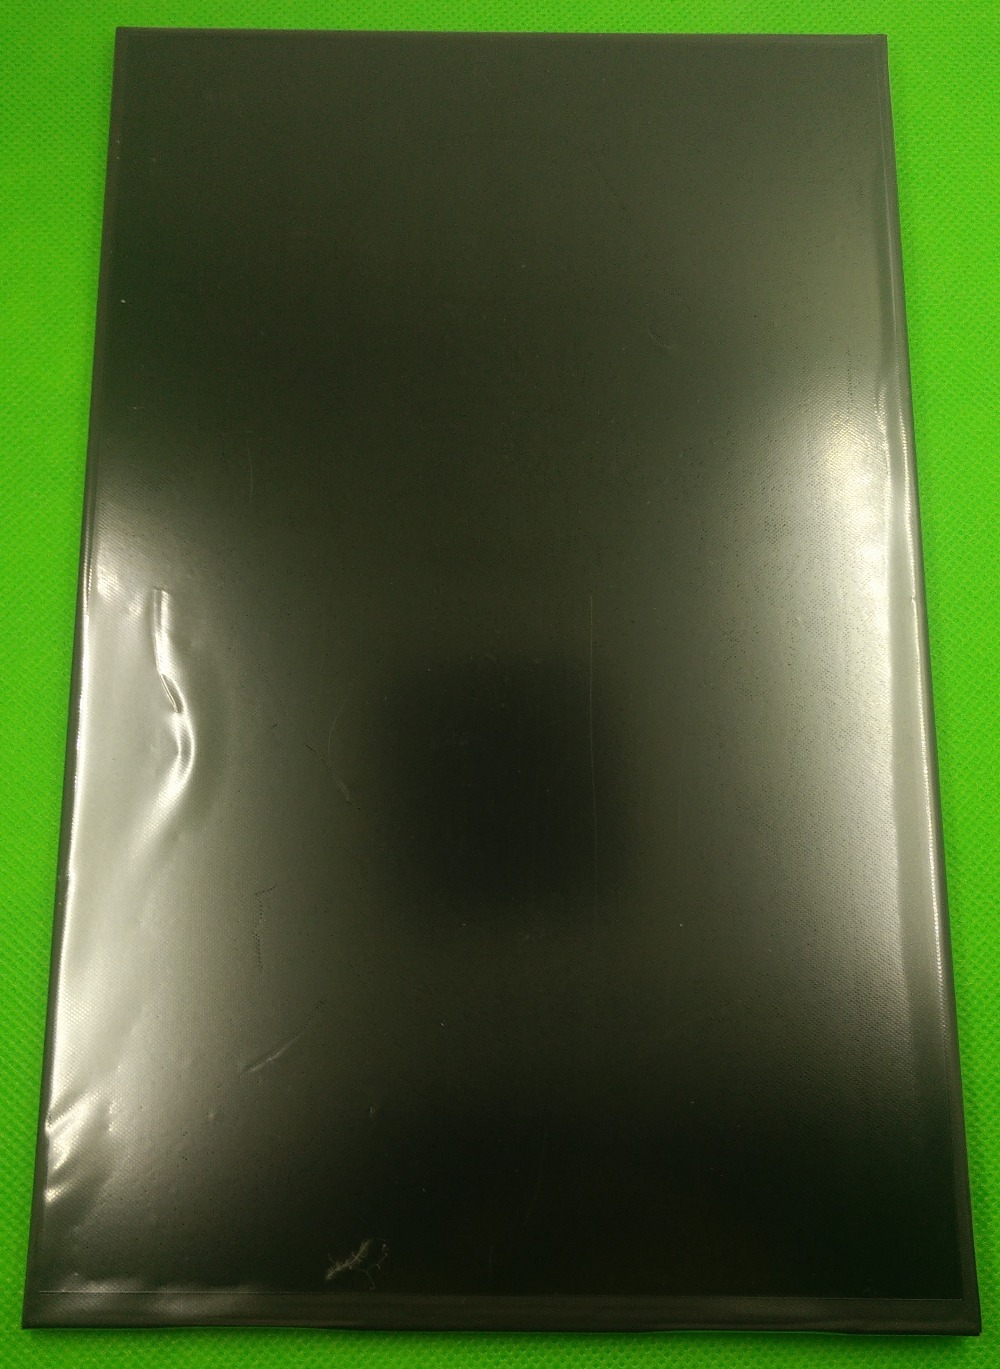 10.1 inch  LCD Display  Screen For irbis TW40 irbis TW42 Tablet PC Replacement Parts free shipping mass effect volume 2 evolution